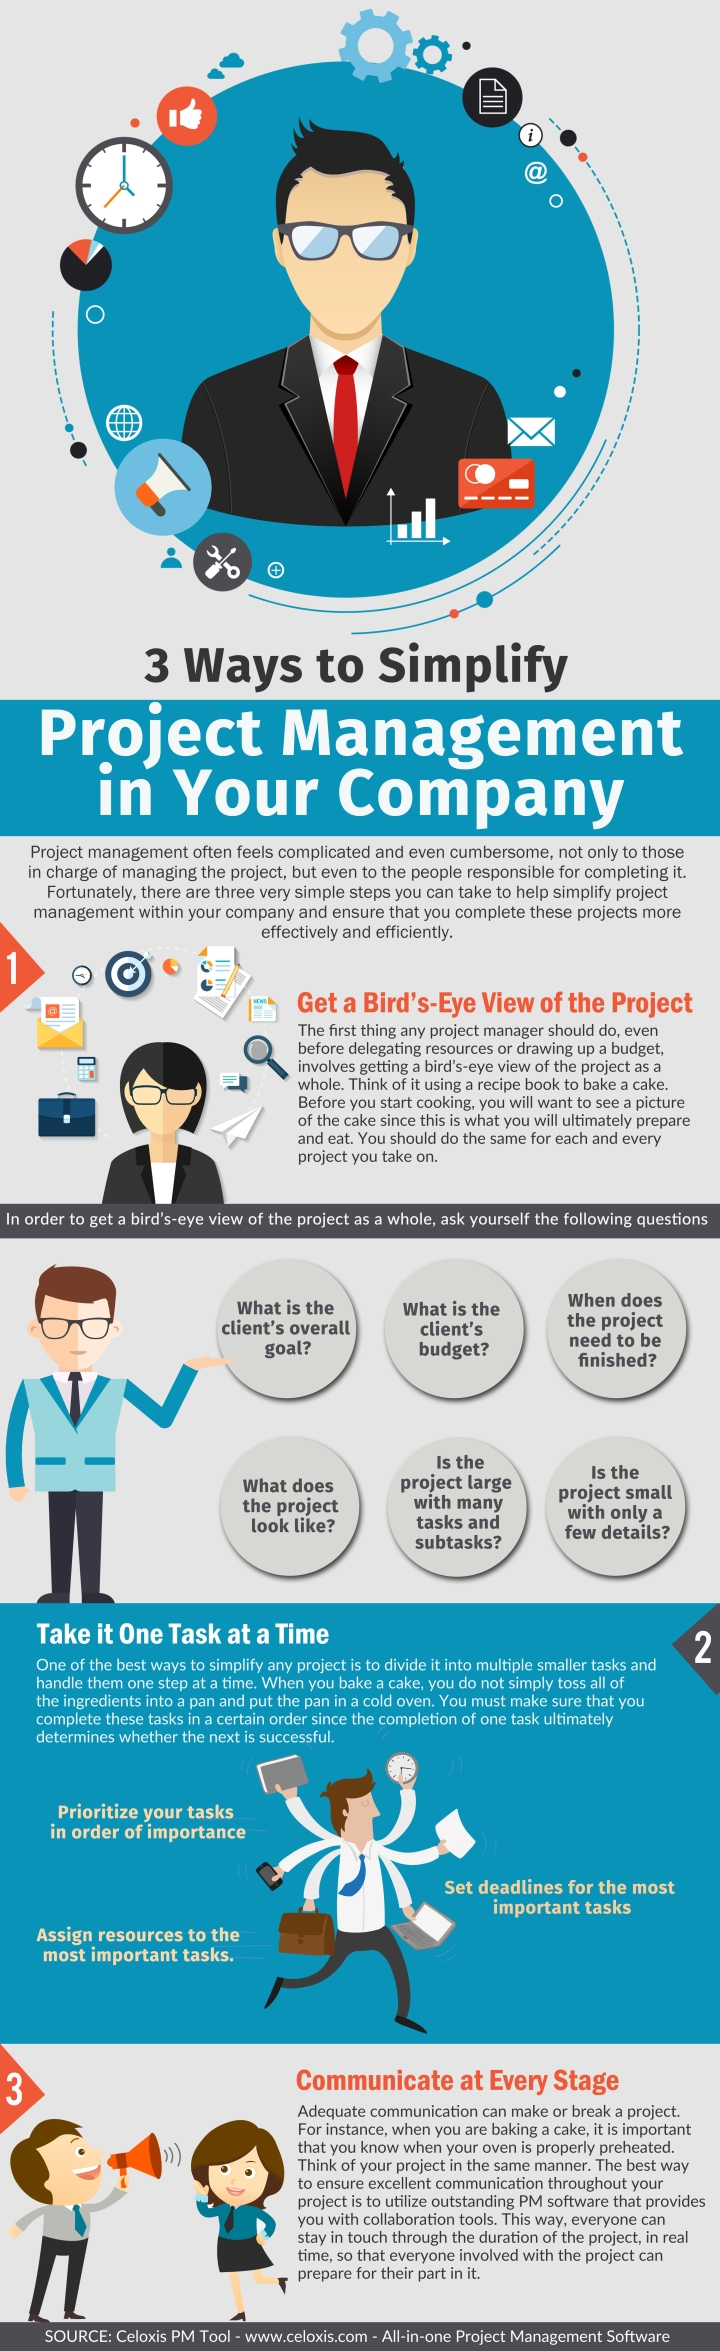 INFOGRAPHIC: 3 Ways to Simplify Project Management in your Company